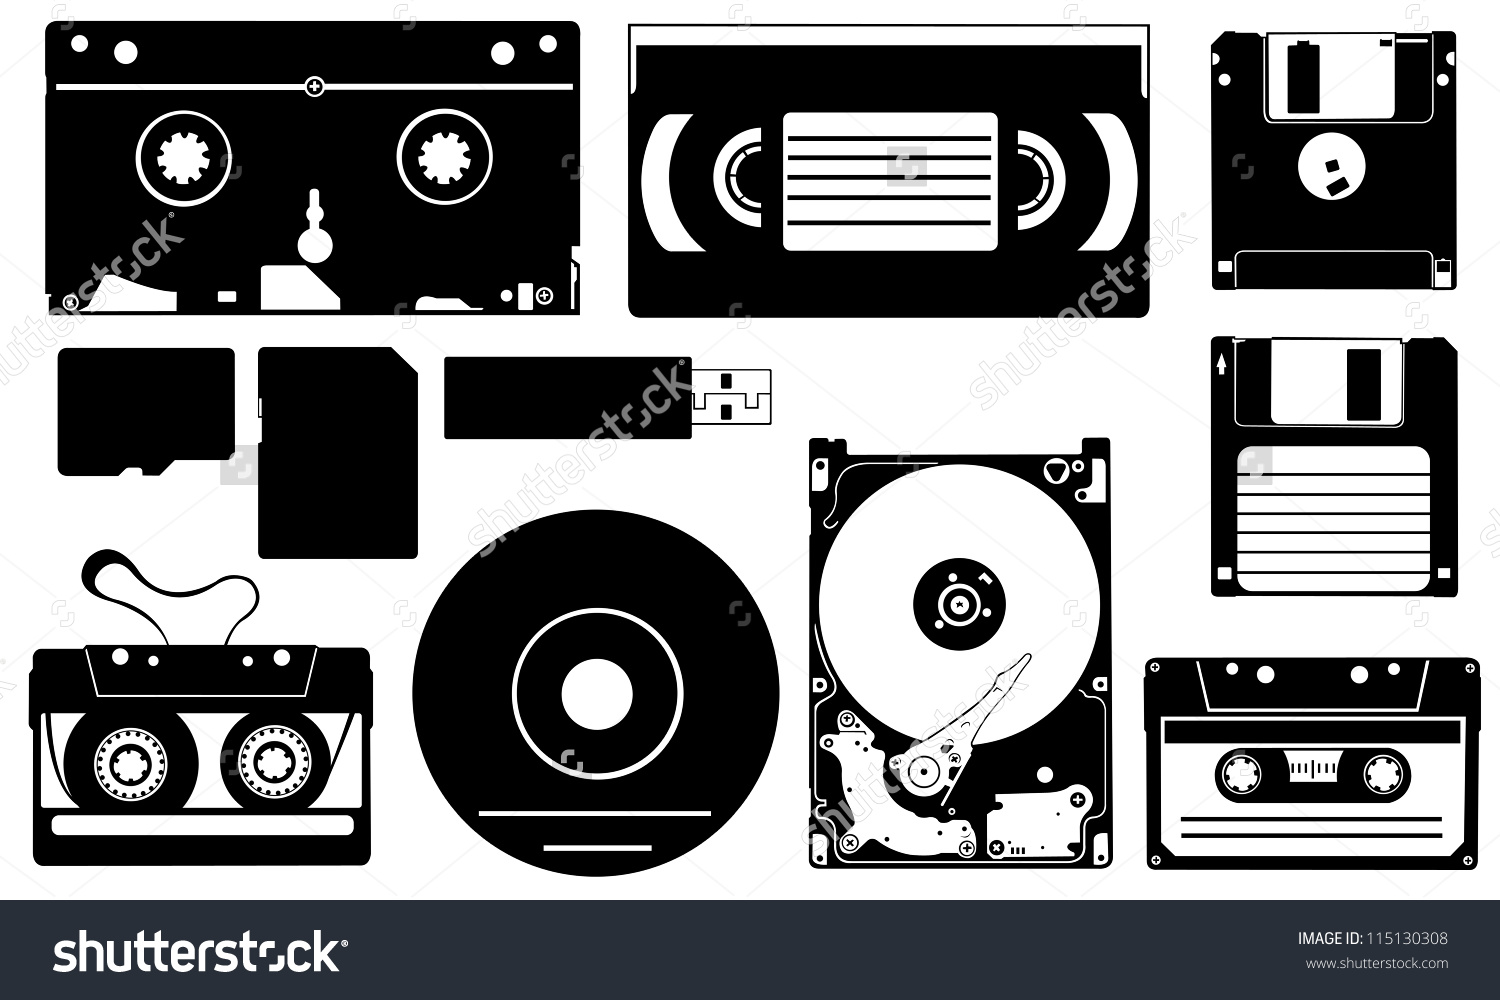 Set Different Data Storage Devices Stock Vector 115130308.